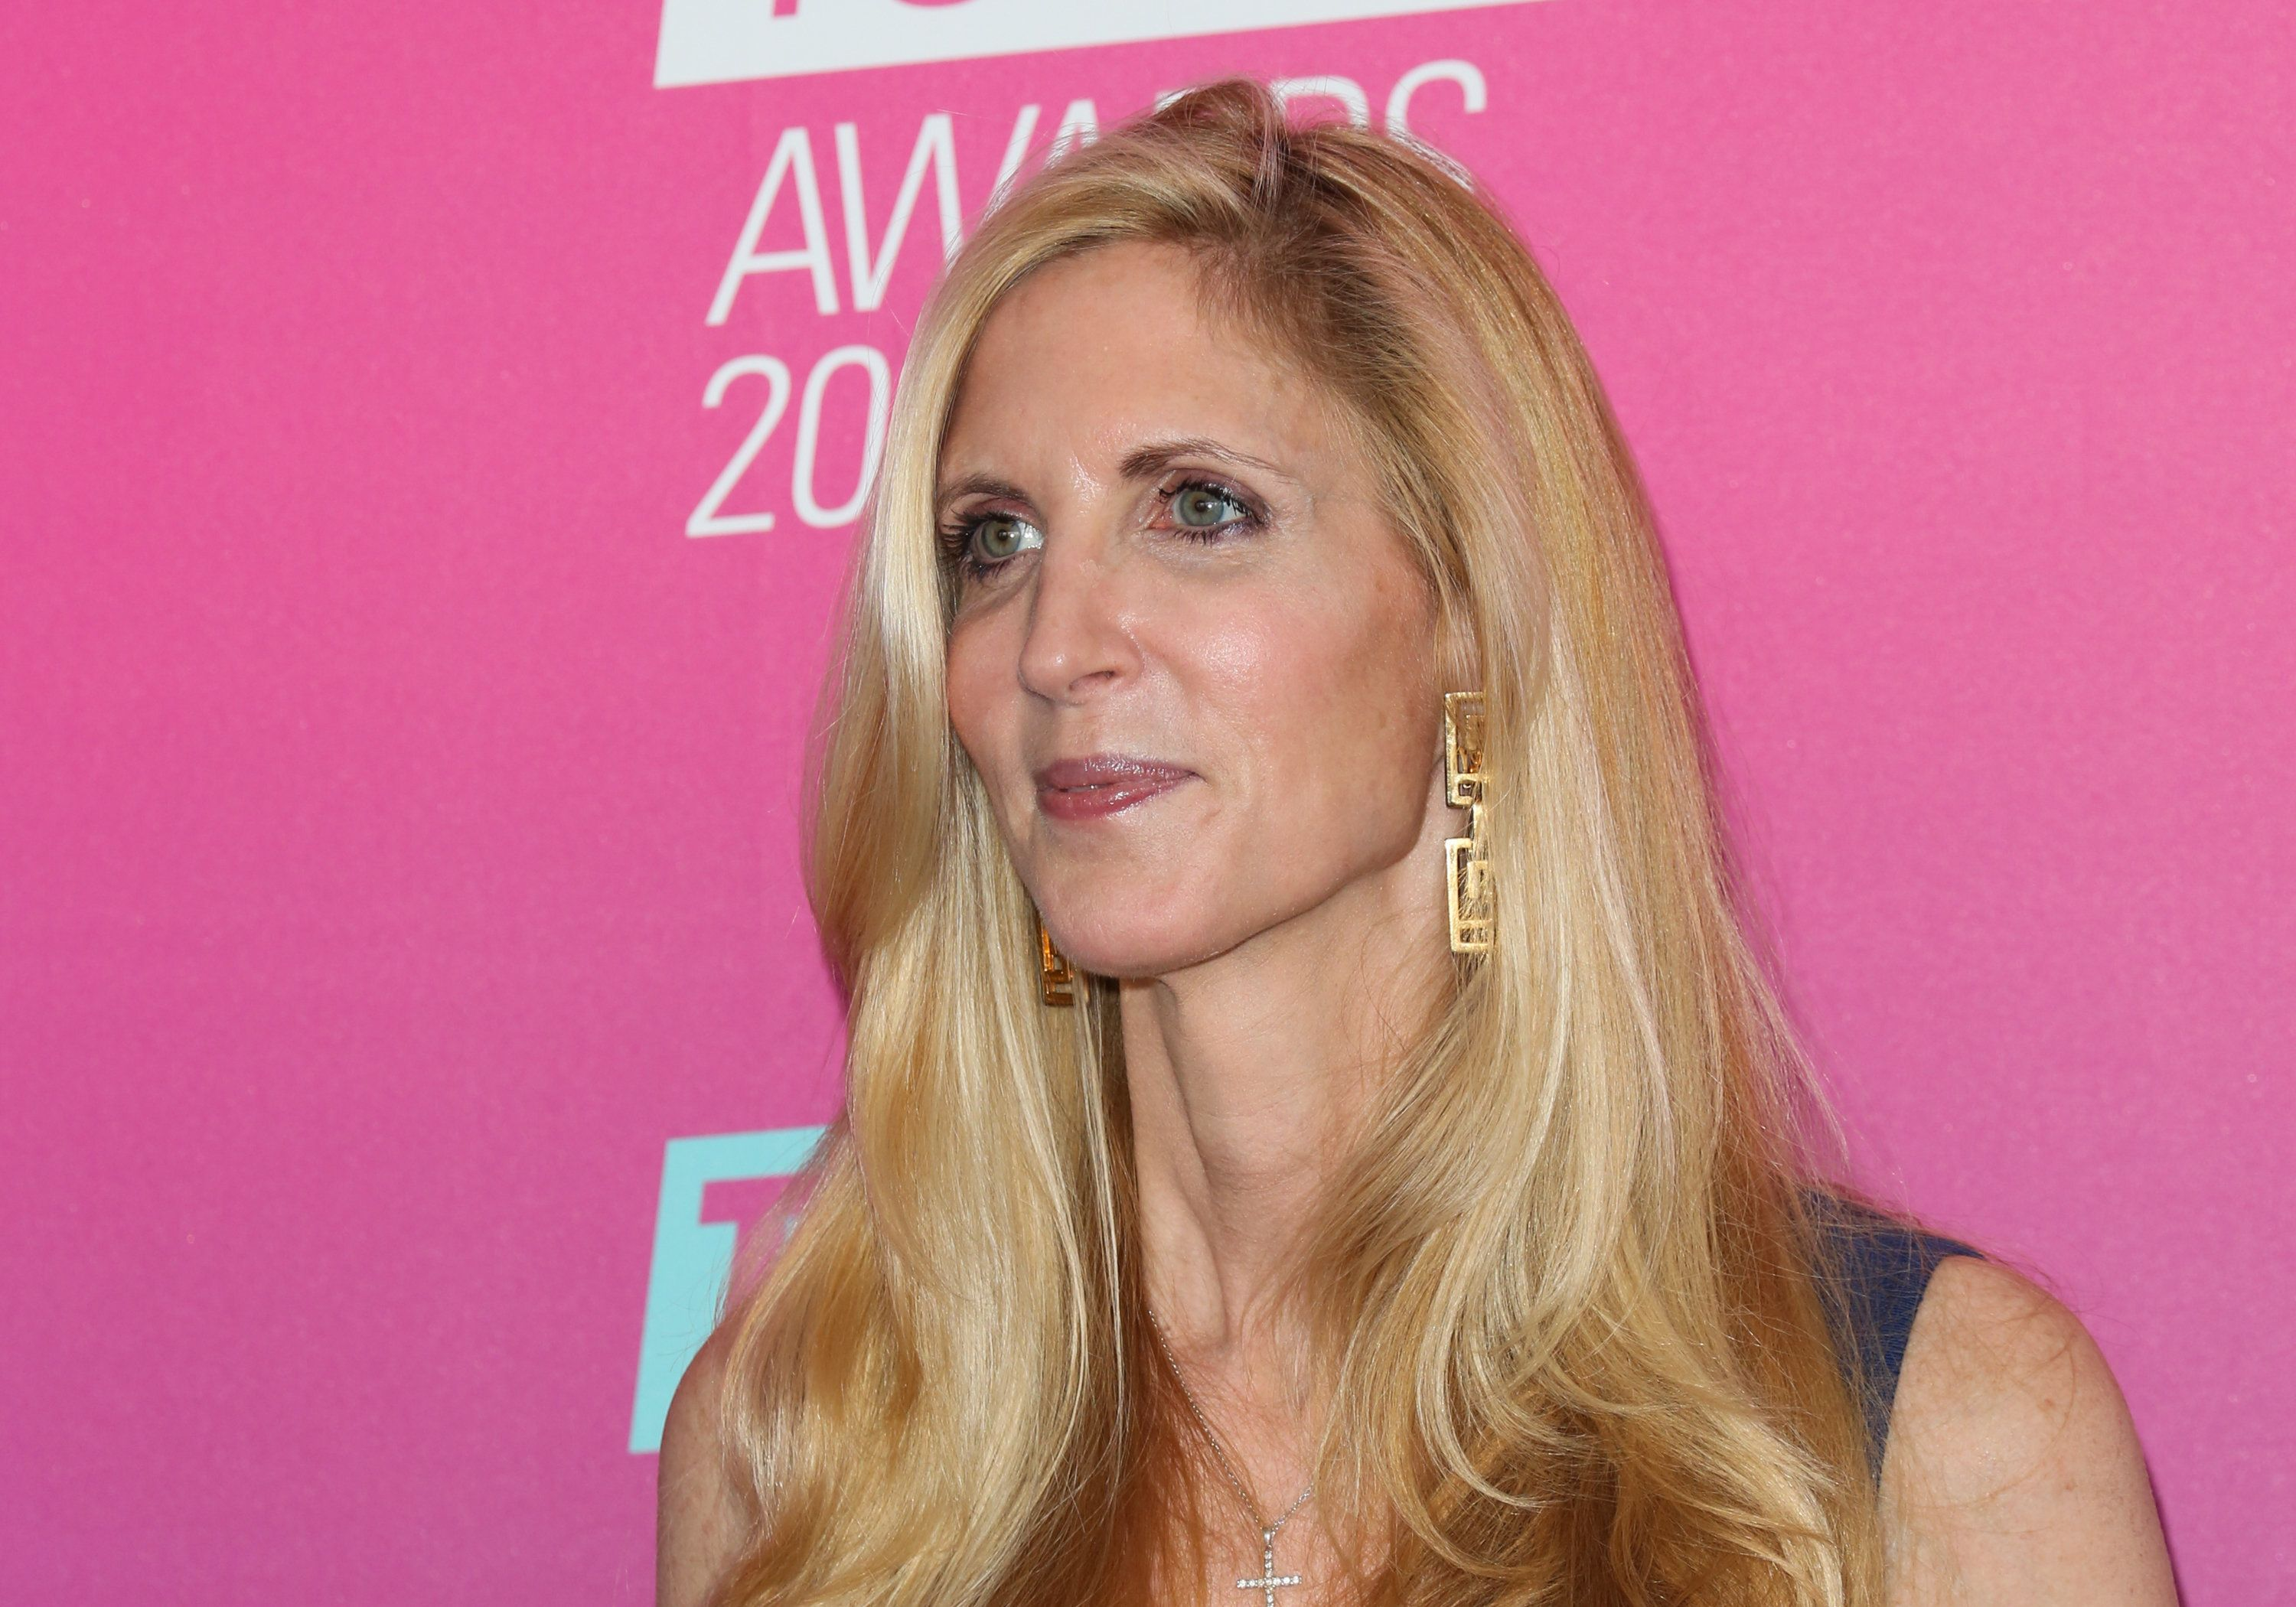 SANTA MONICA, CALIFORNIA - APRIL 10:  TV Personality Ann Coulter attends the TV Land Icon Awards at The Barker Hanger on April 10, 2016 in Santa Monica, California.  (Photo by Paul Archuleta/FilmMagic)